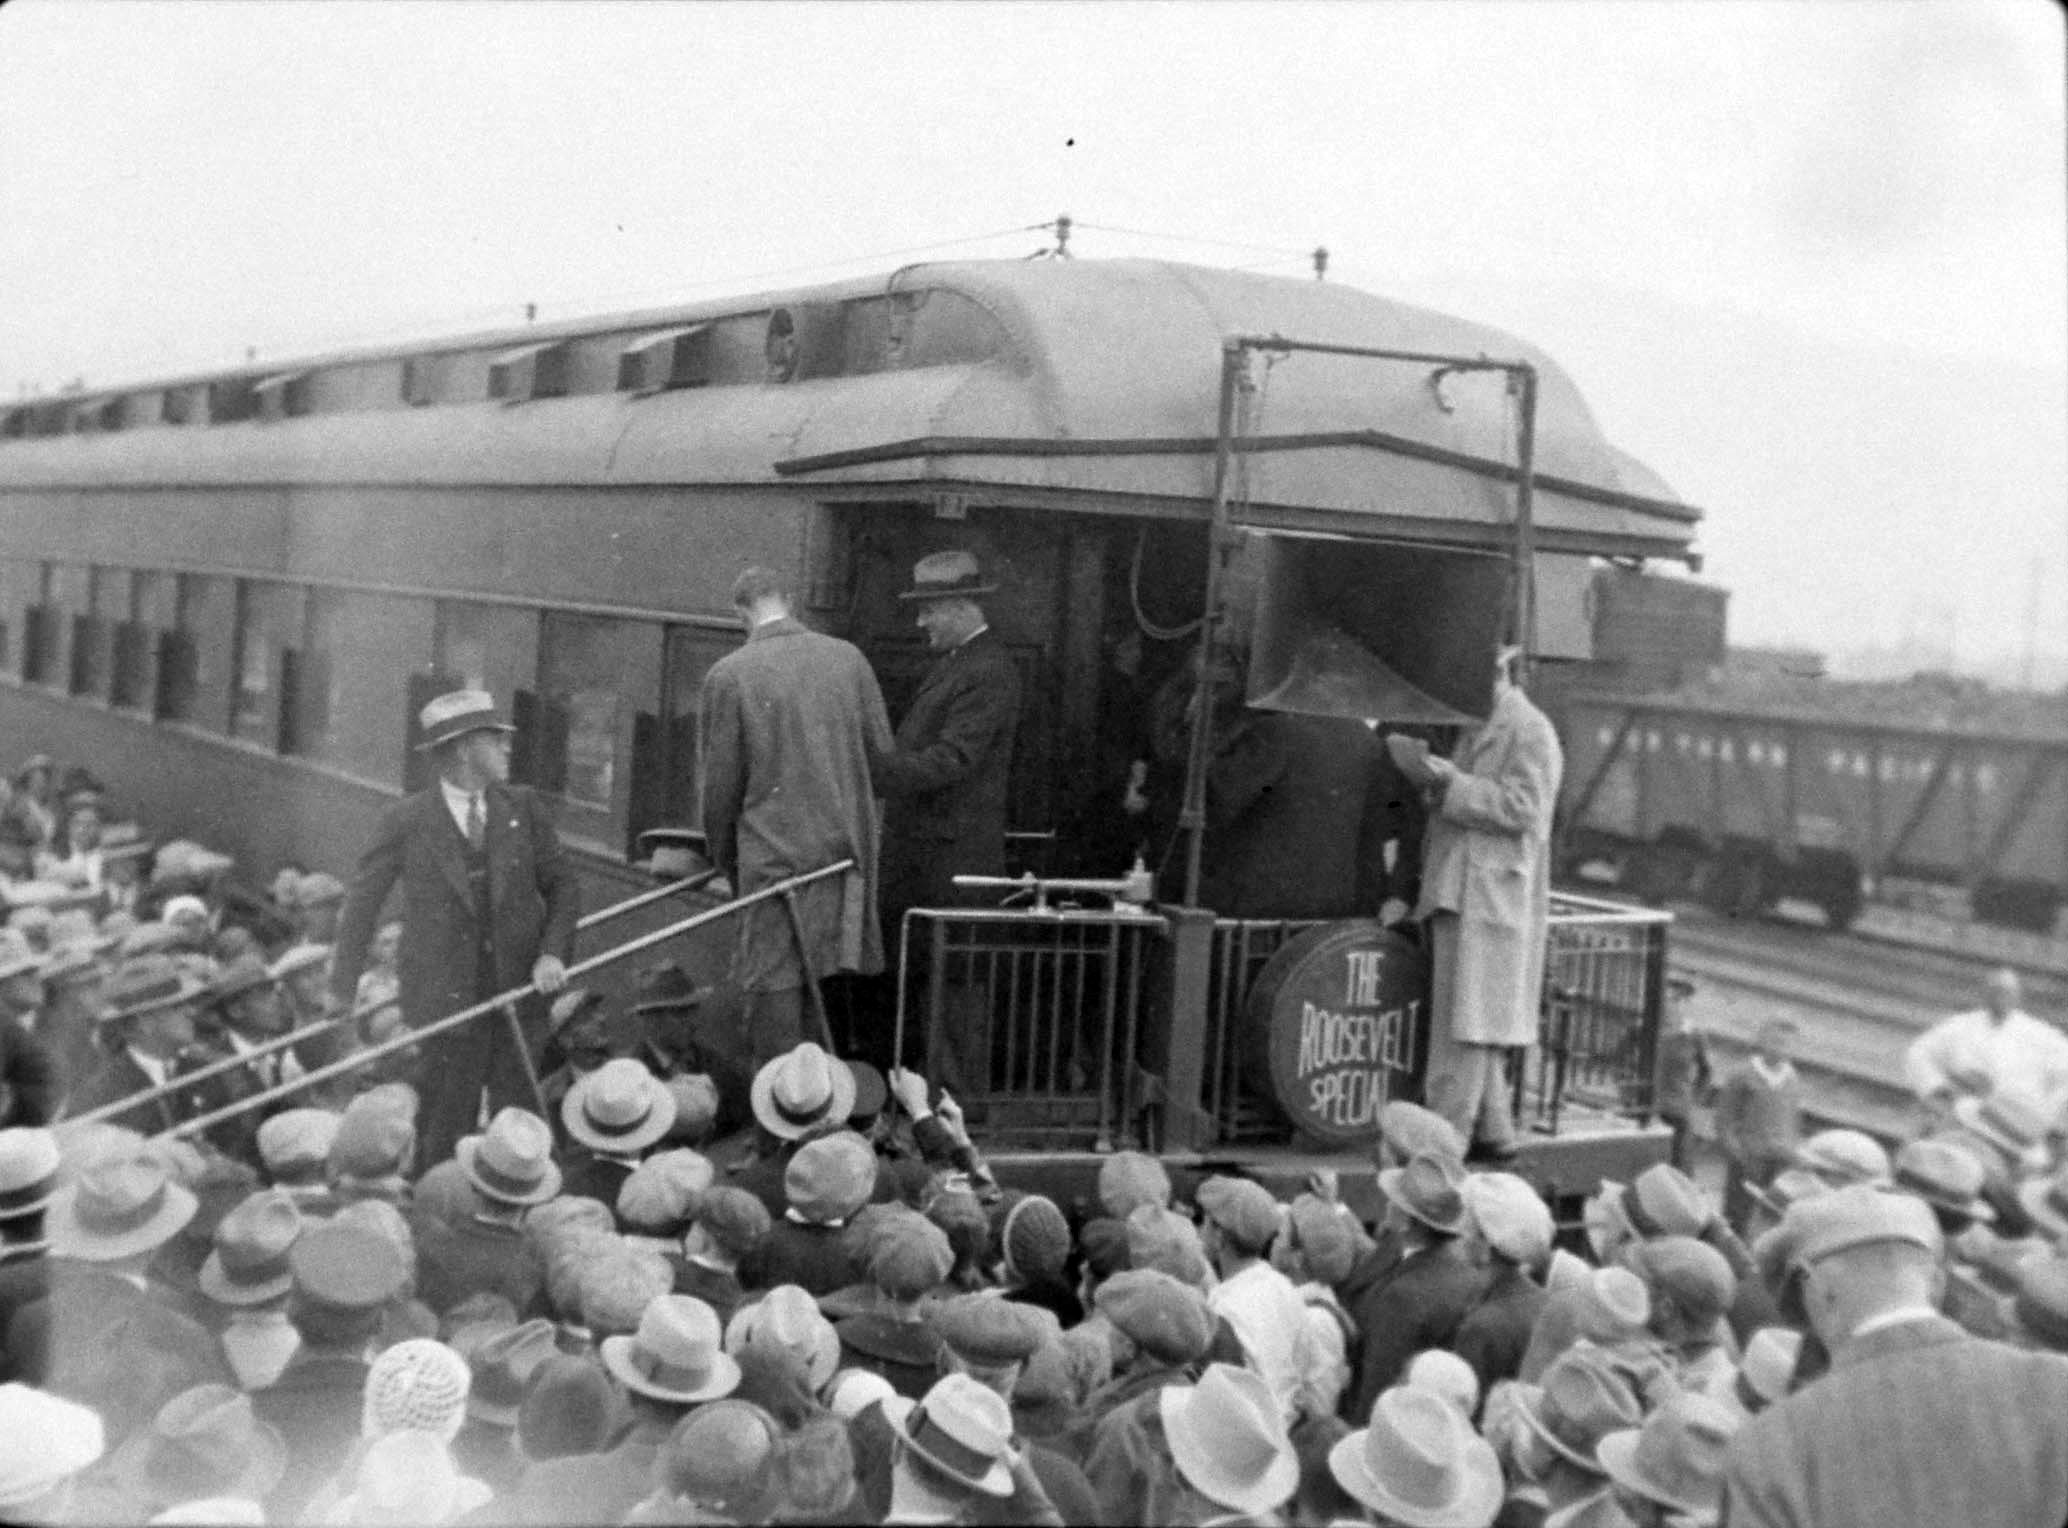 President Franklin D. Roosevelt arrives at the Depot via the The Roosevelt Special. Photo 32-029-26_C. Owen Smith courtesy of Butte-Silver Bow Public Archives